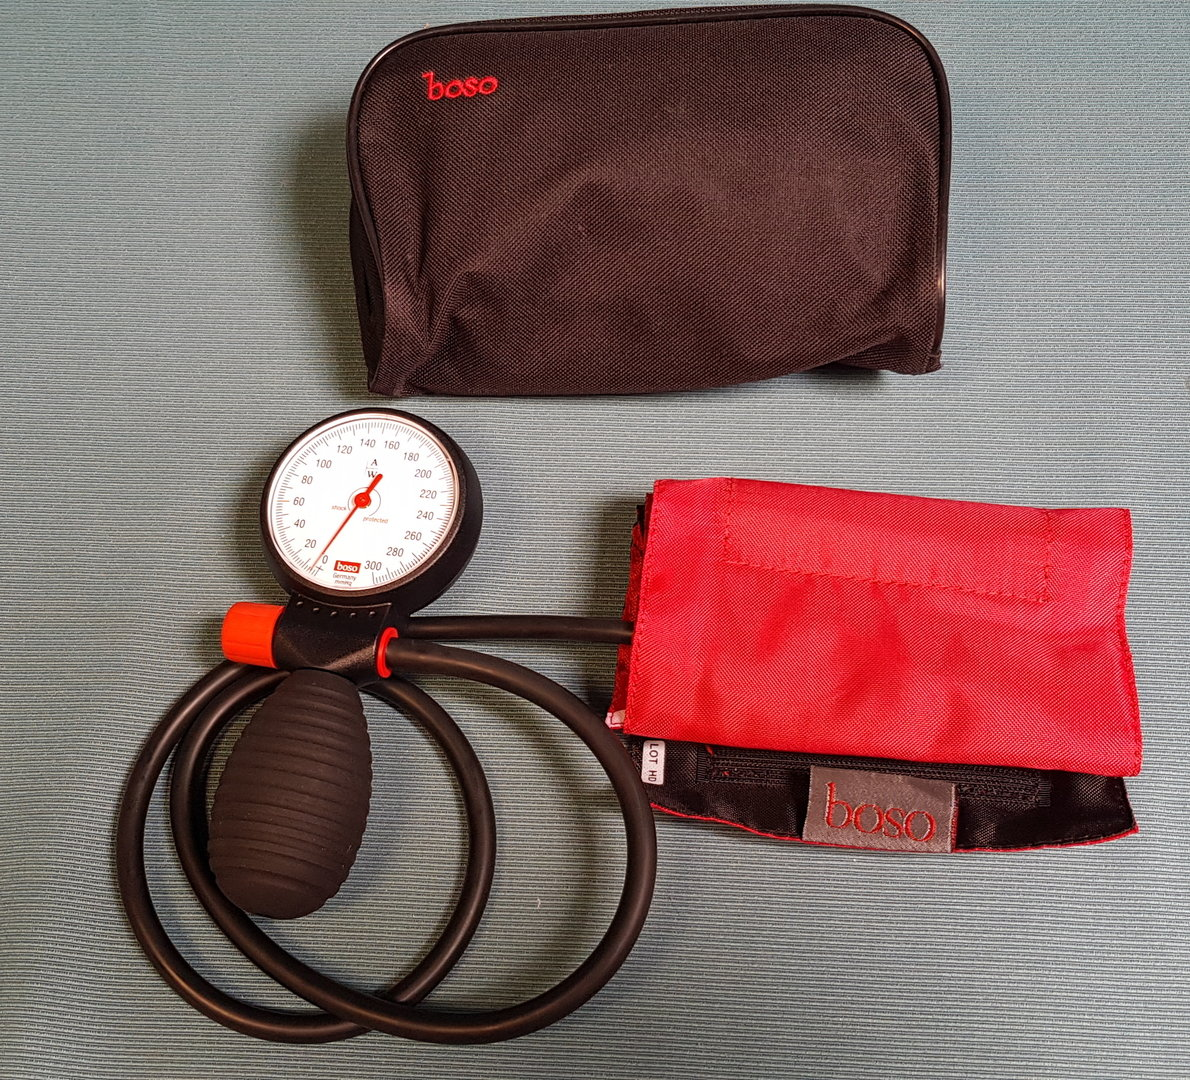 Boso Clinicus Sphygmomanometer Robust Dual Hose Blood